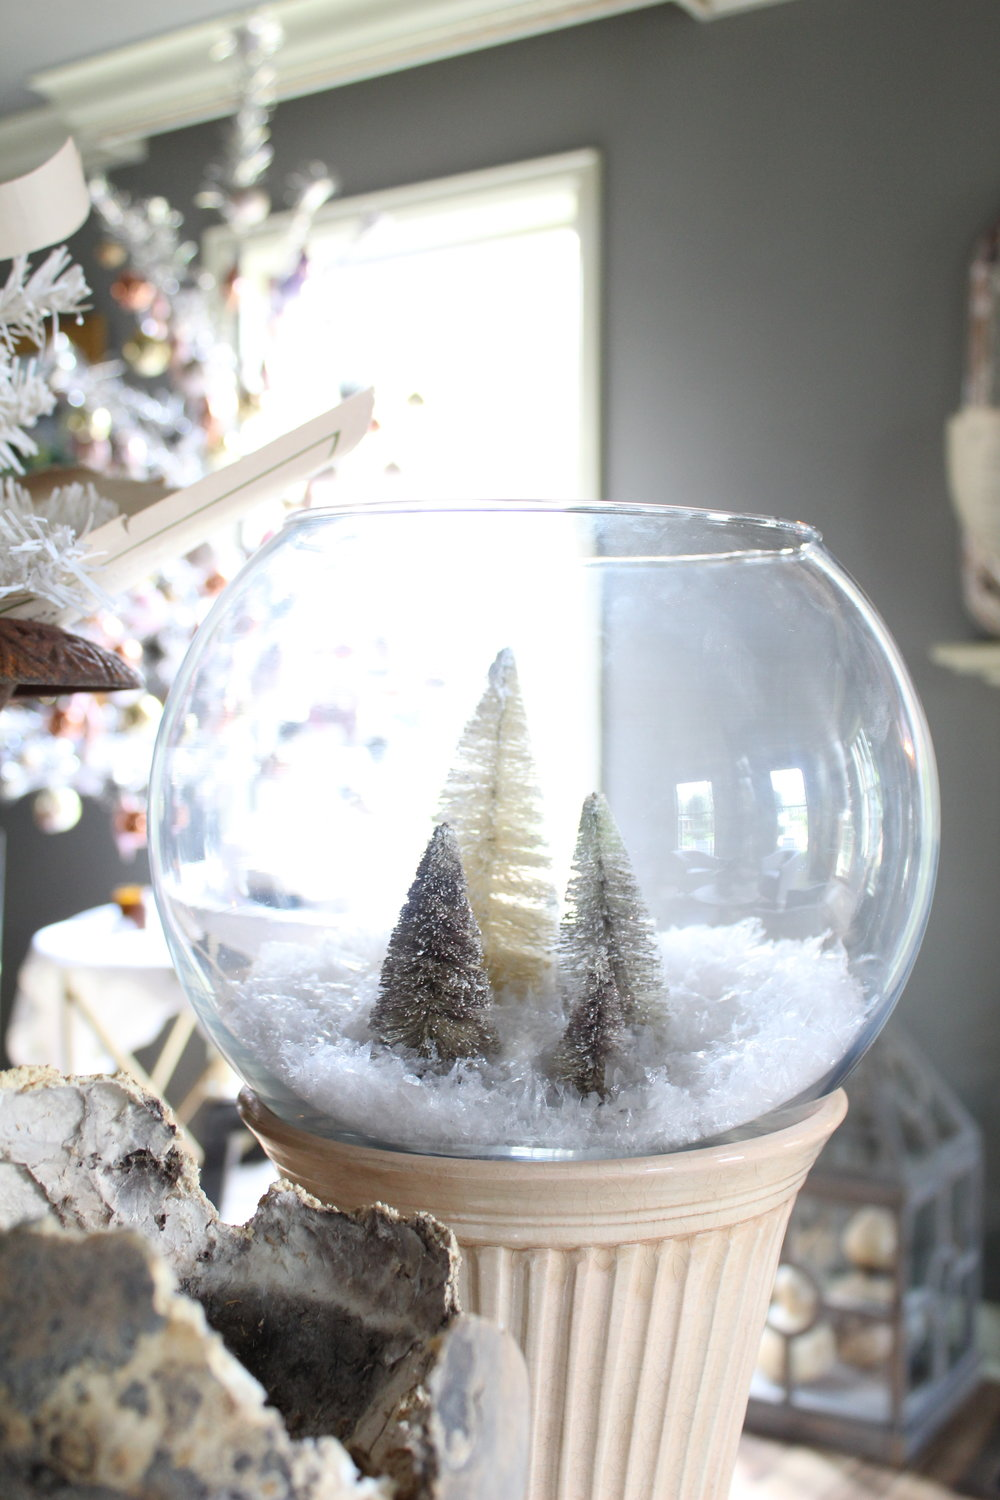 Let it snow… - Bleached bottle-brush tree snow globes